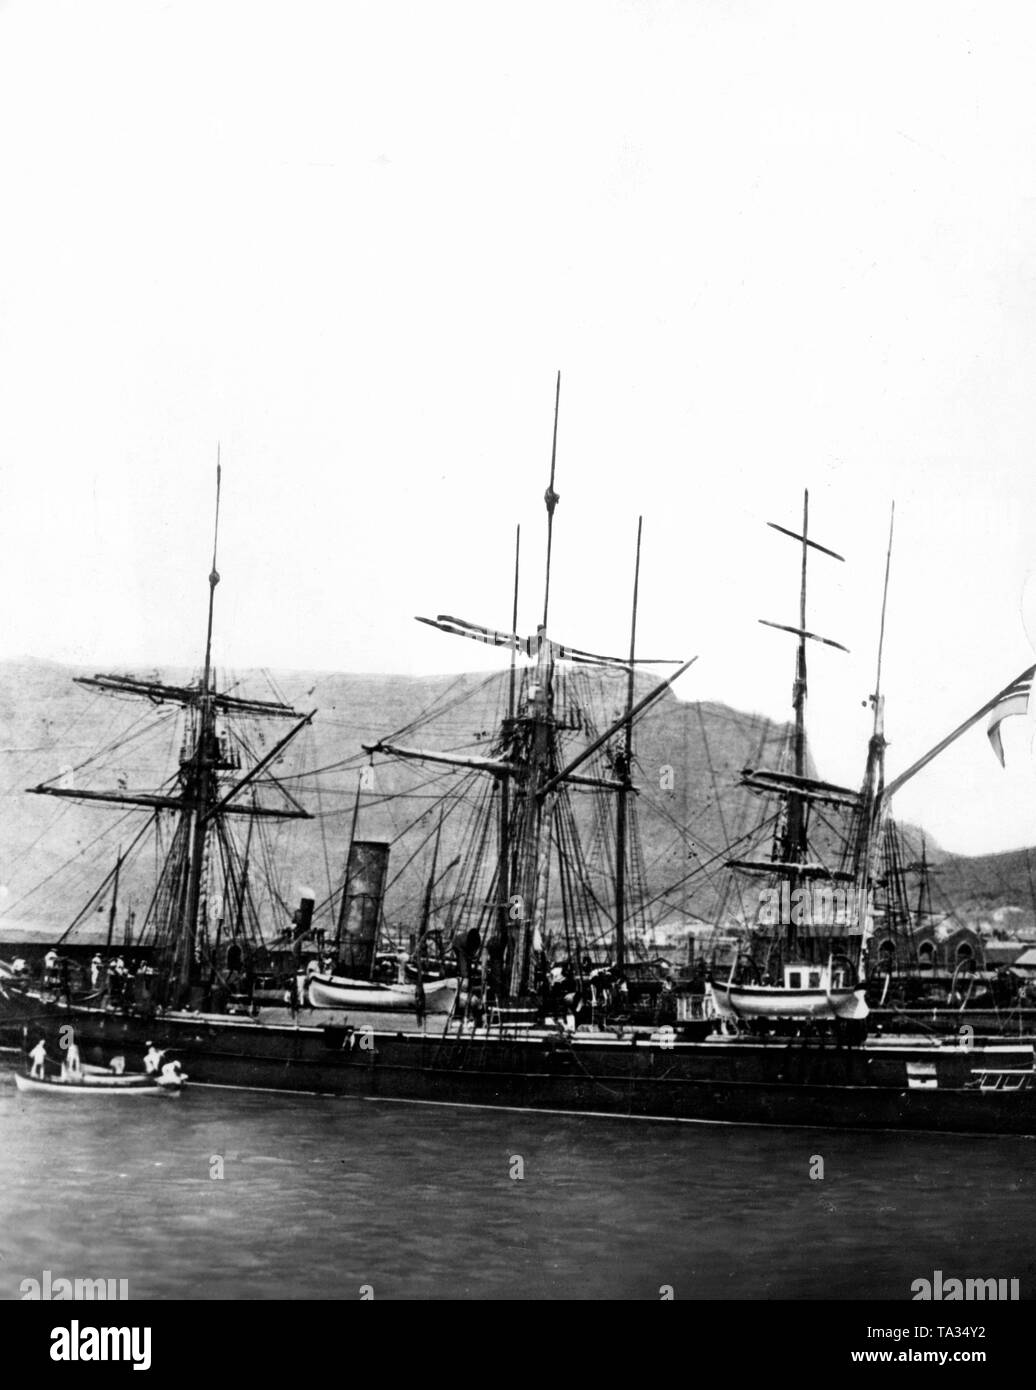 The famous gunboat 'Moeve', with which Nachtigal traveled to West Africa in 1884 to raise the German flag in Togo, Cameroon and the southwest on behalf of the Reich government. Possibly in Cape Town. - Stock Image